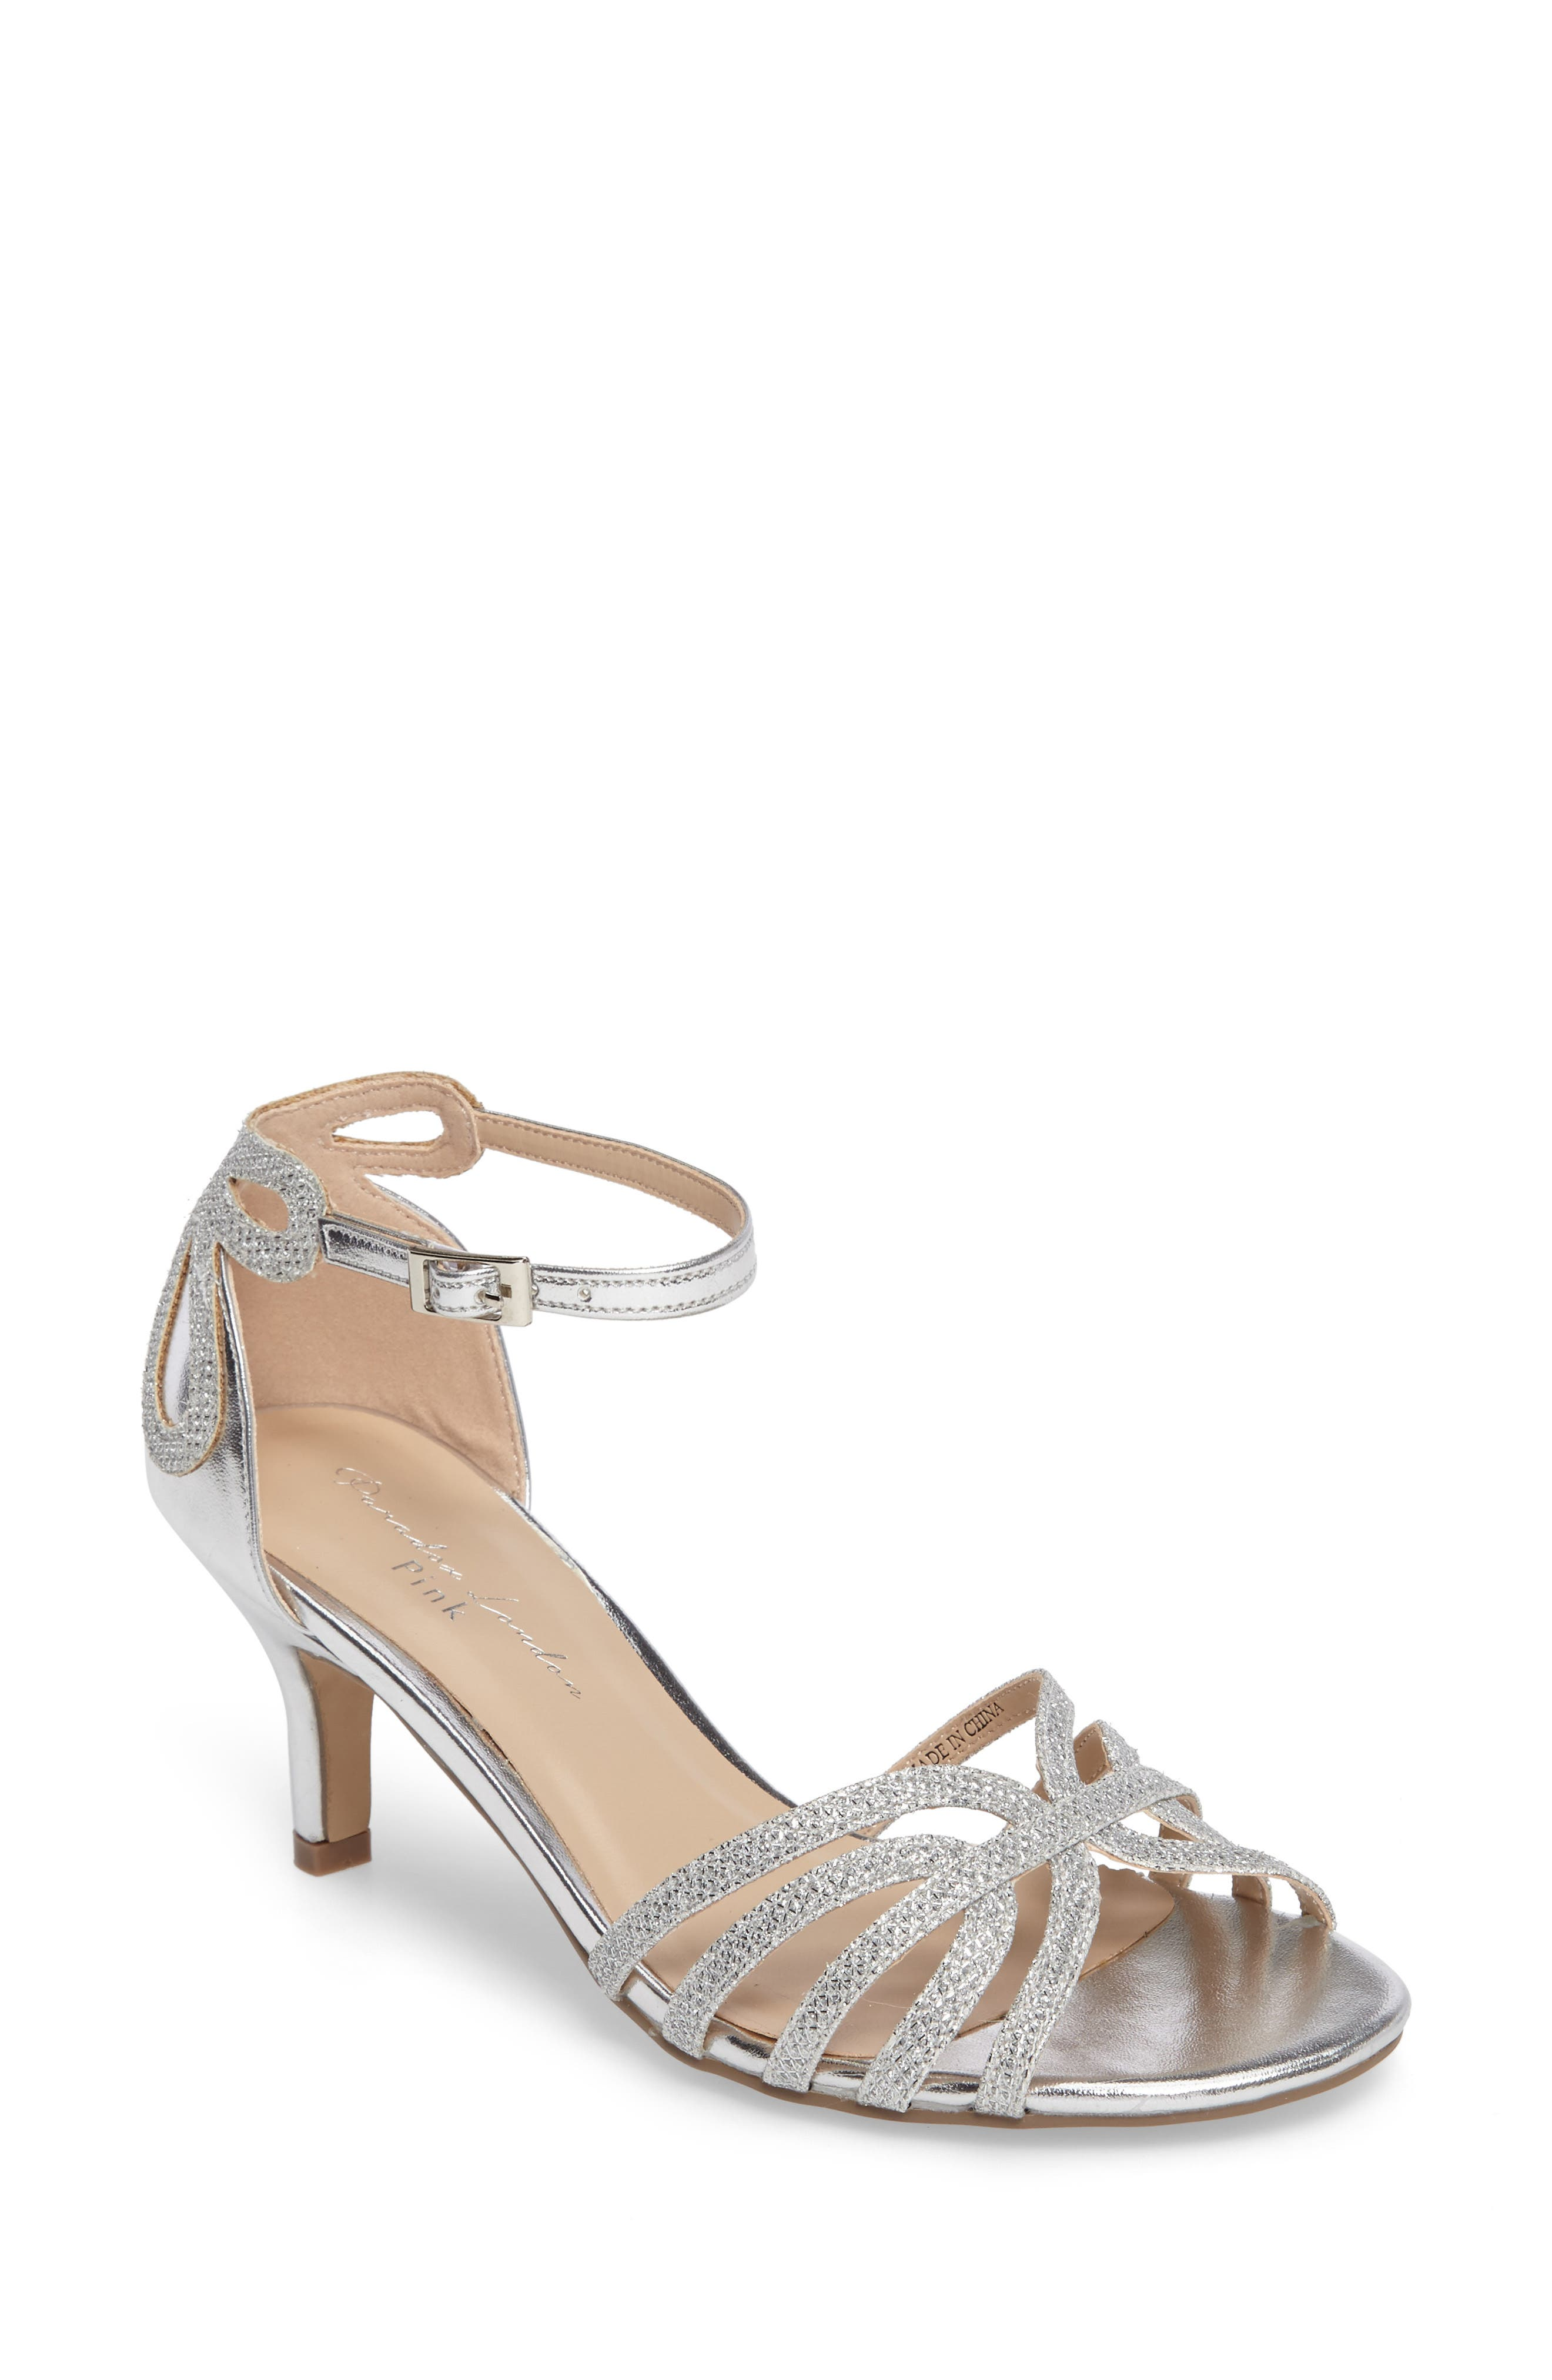 Melby Ankle Strap Sandal,                         Main,                         color, SILVER